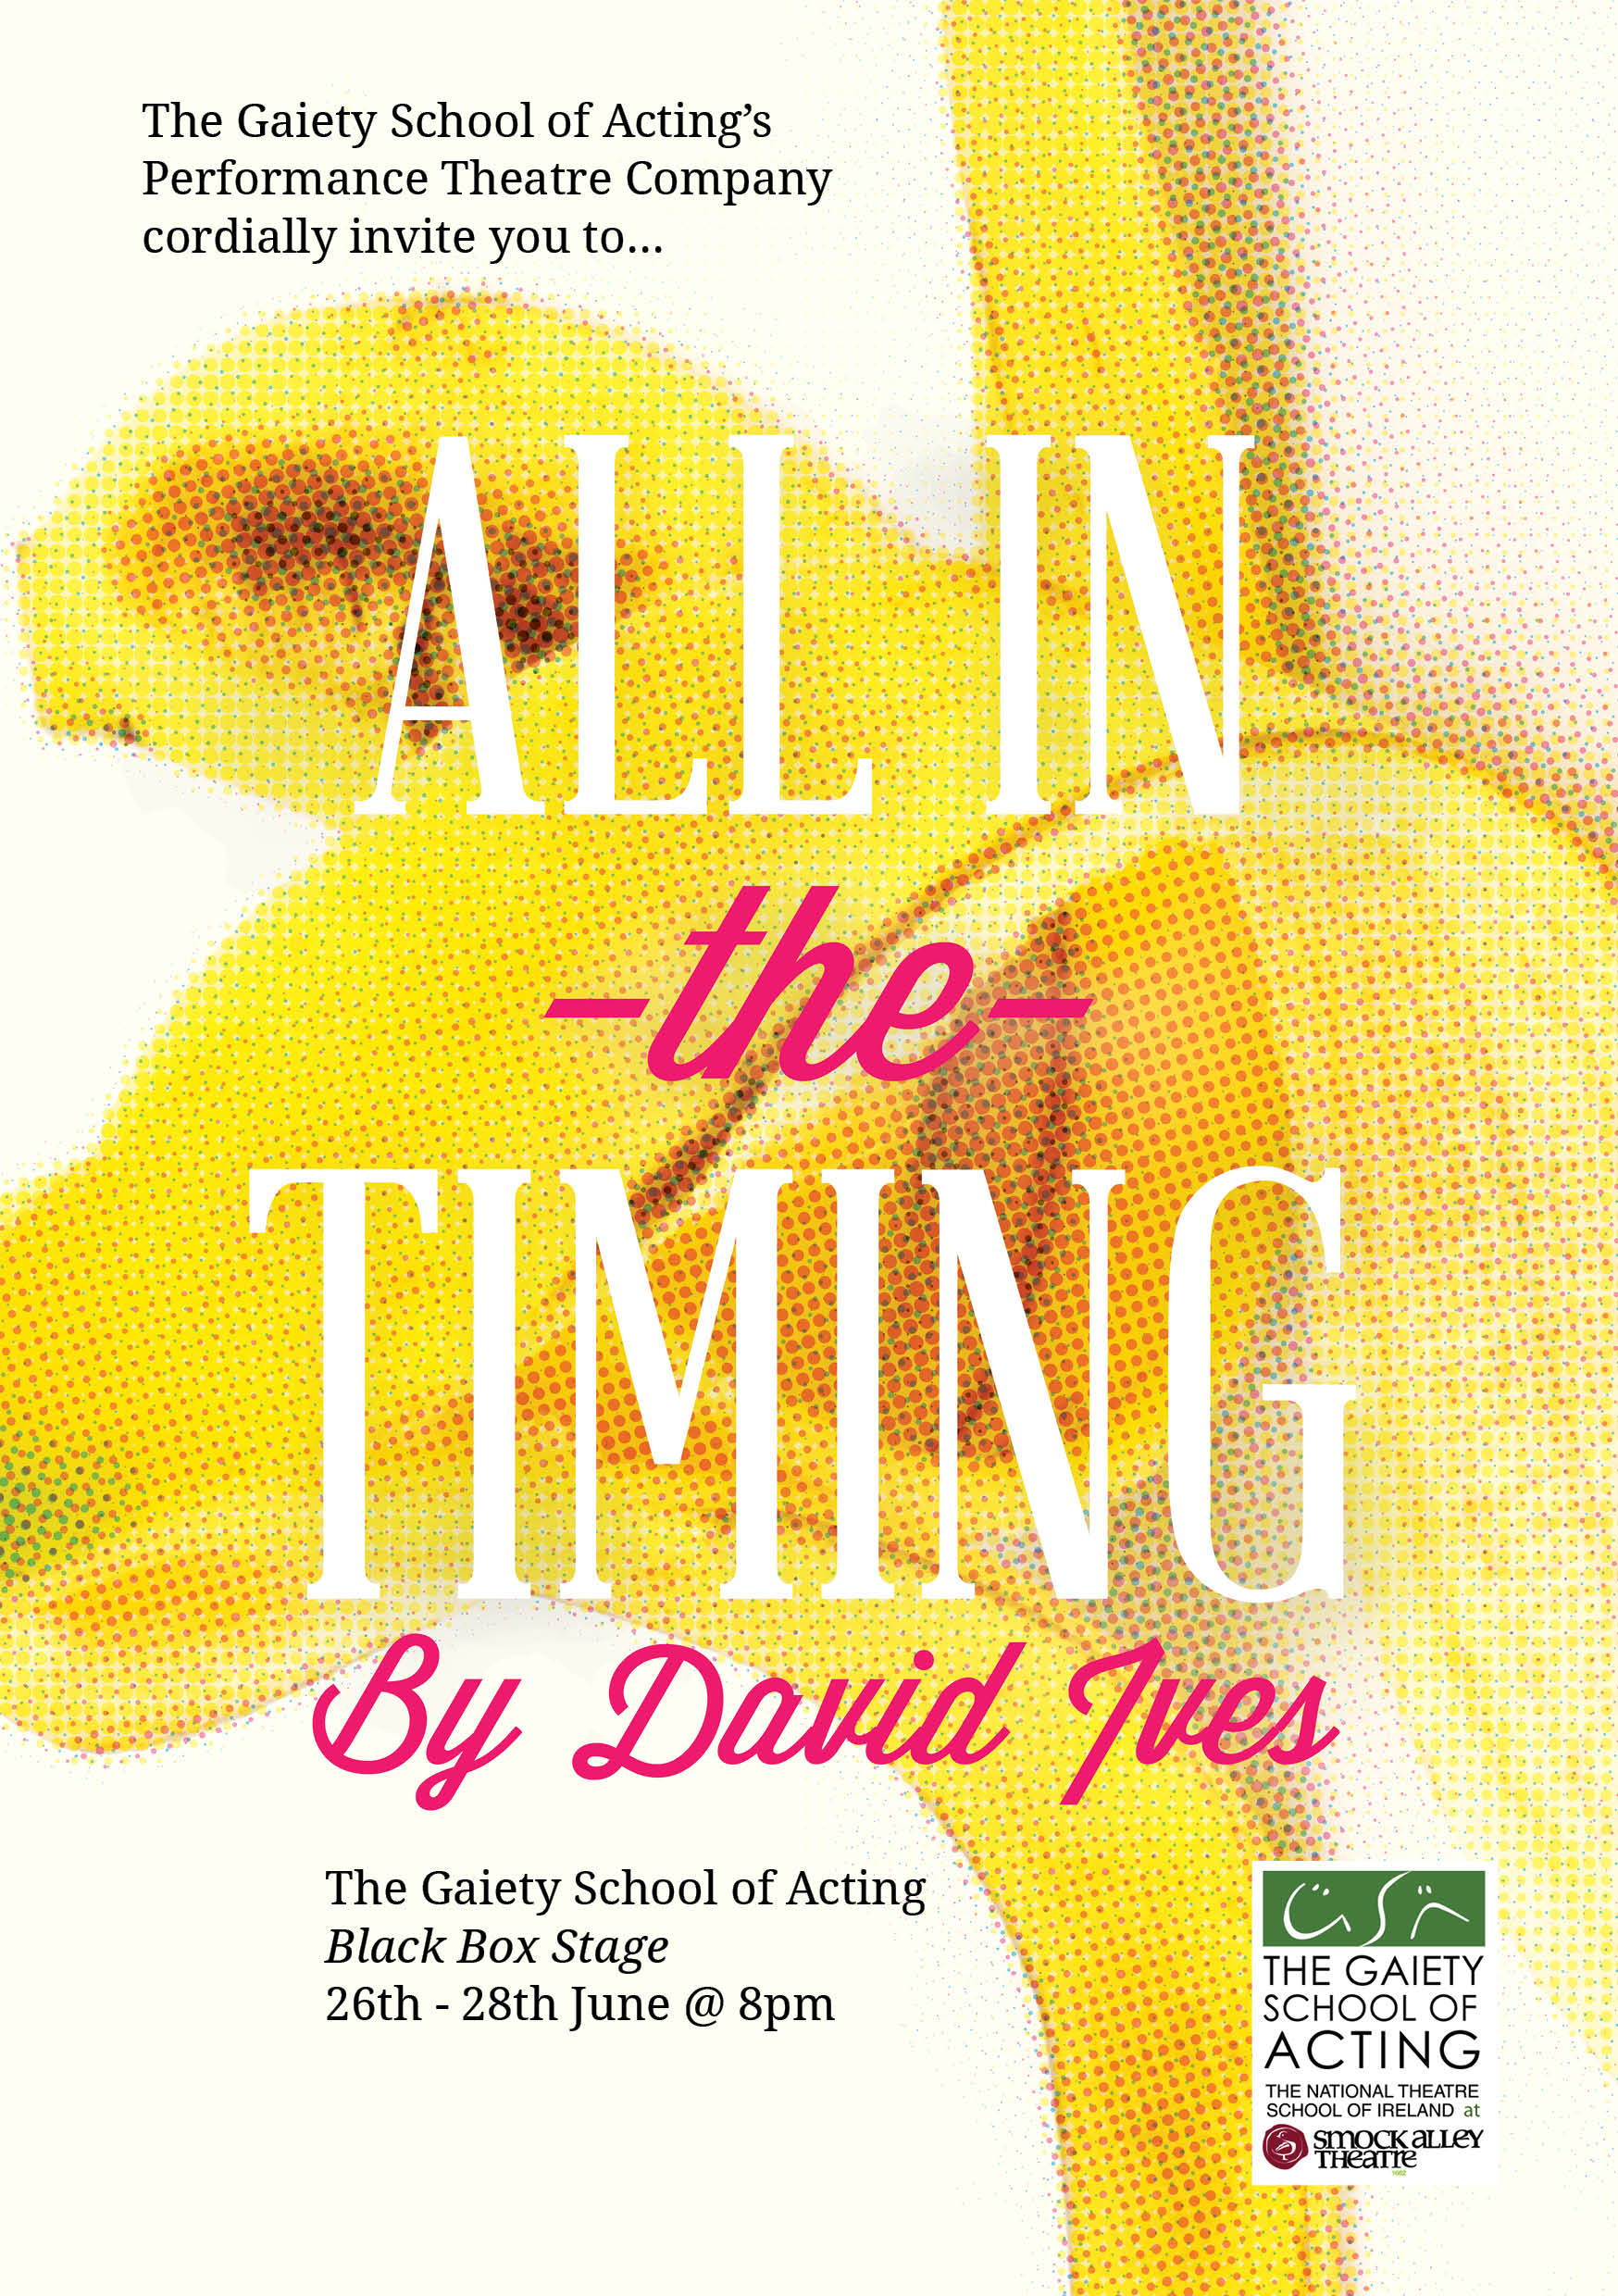 All in the Timing, Dublin, 2014 - An evening of comedy sketches from the playwright David Ives. Developed in collaboration with Stewart Roche and The Gaiety School of Acting Part Time Theatre Company.